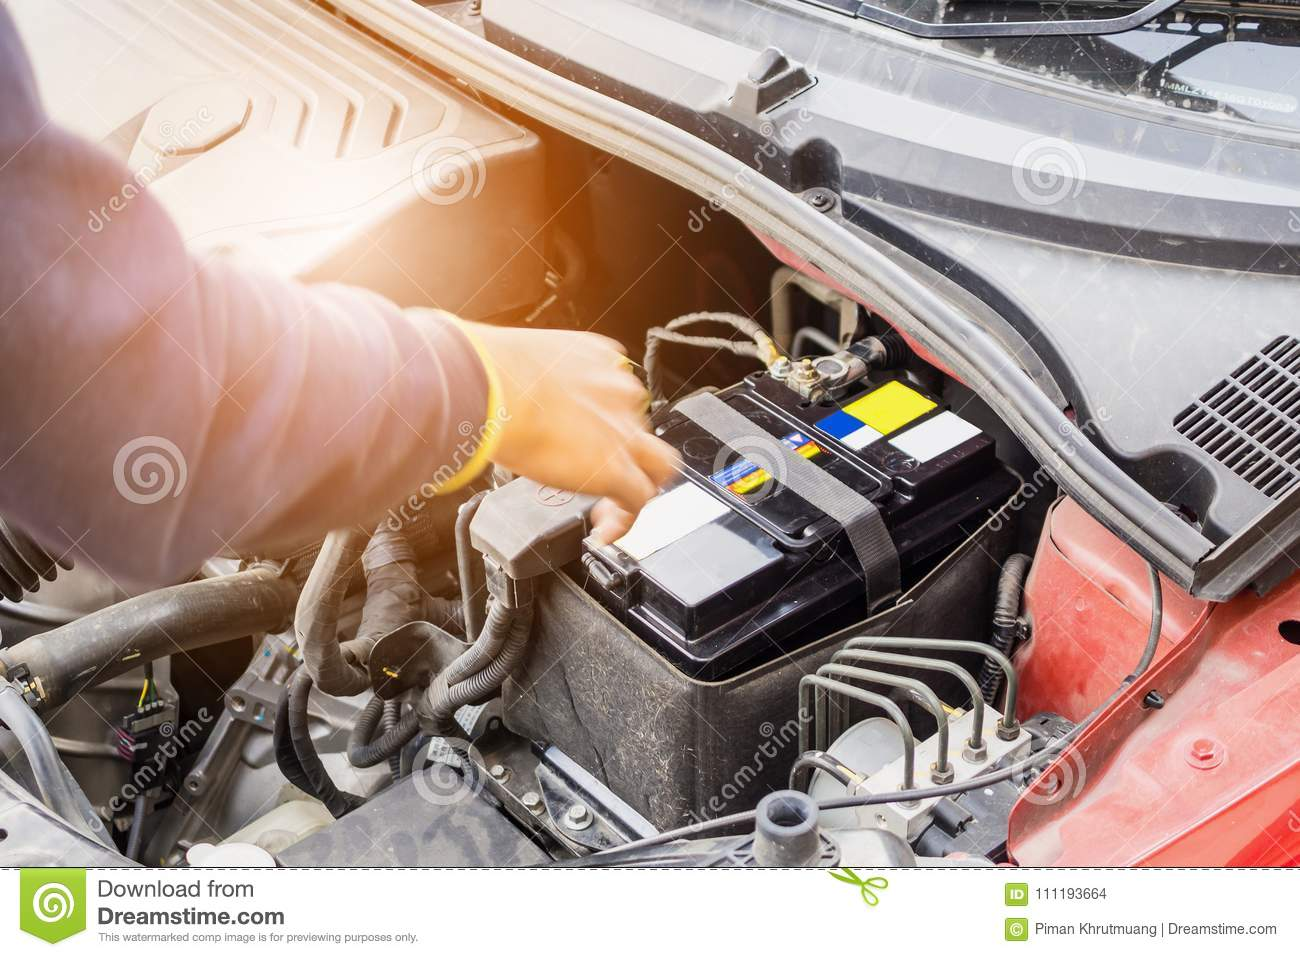 How To Use A Trickle Charger For Your Car S Battery